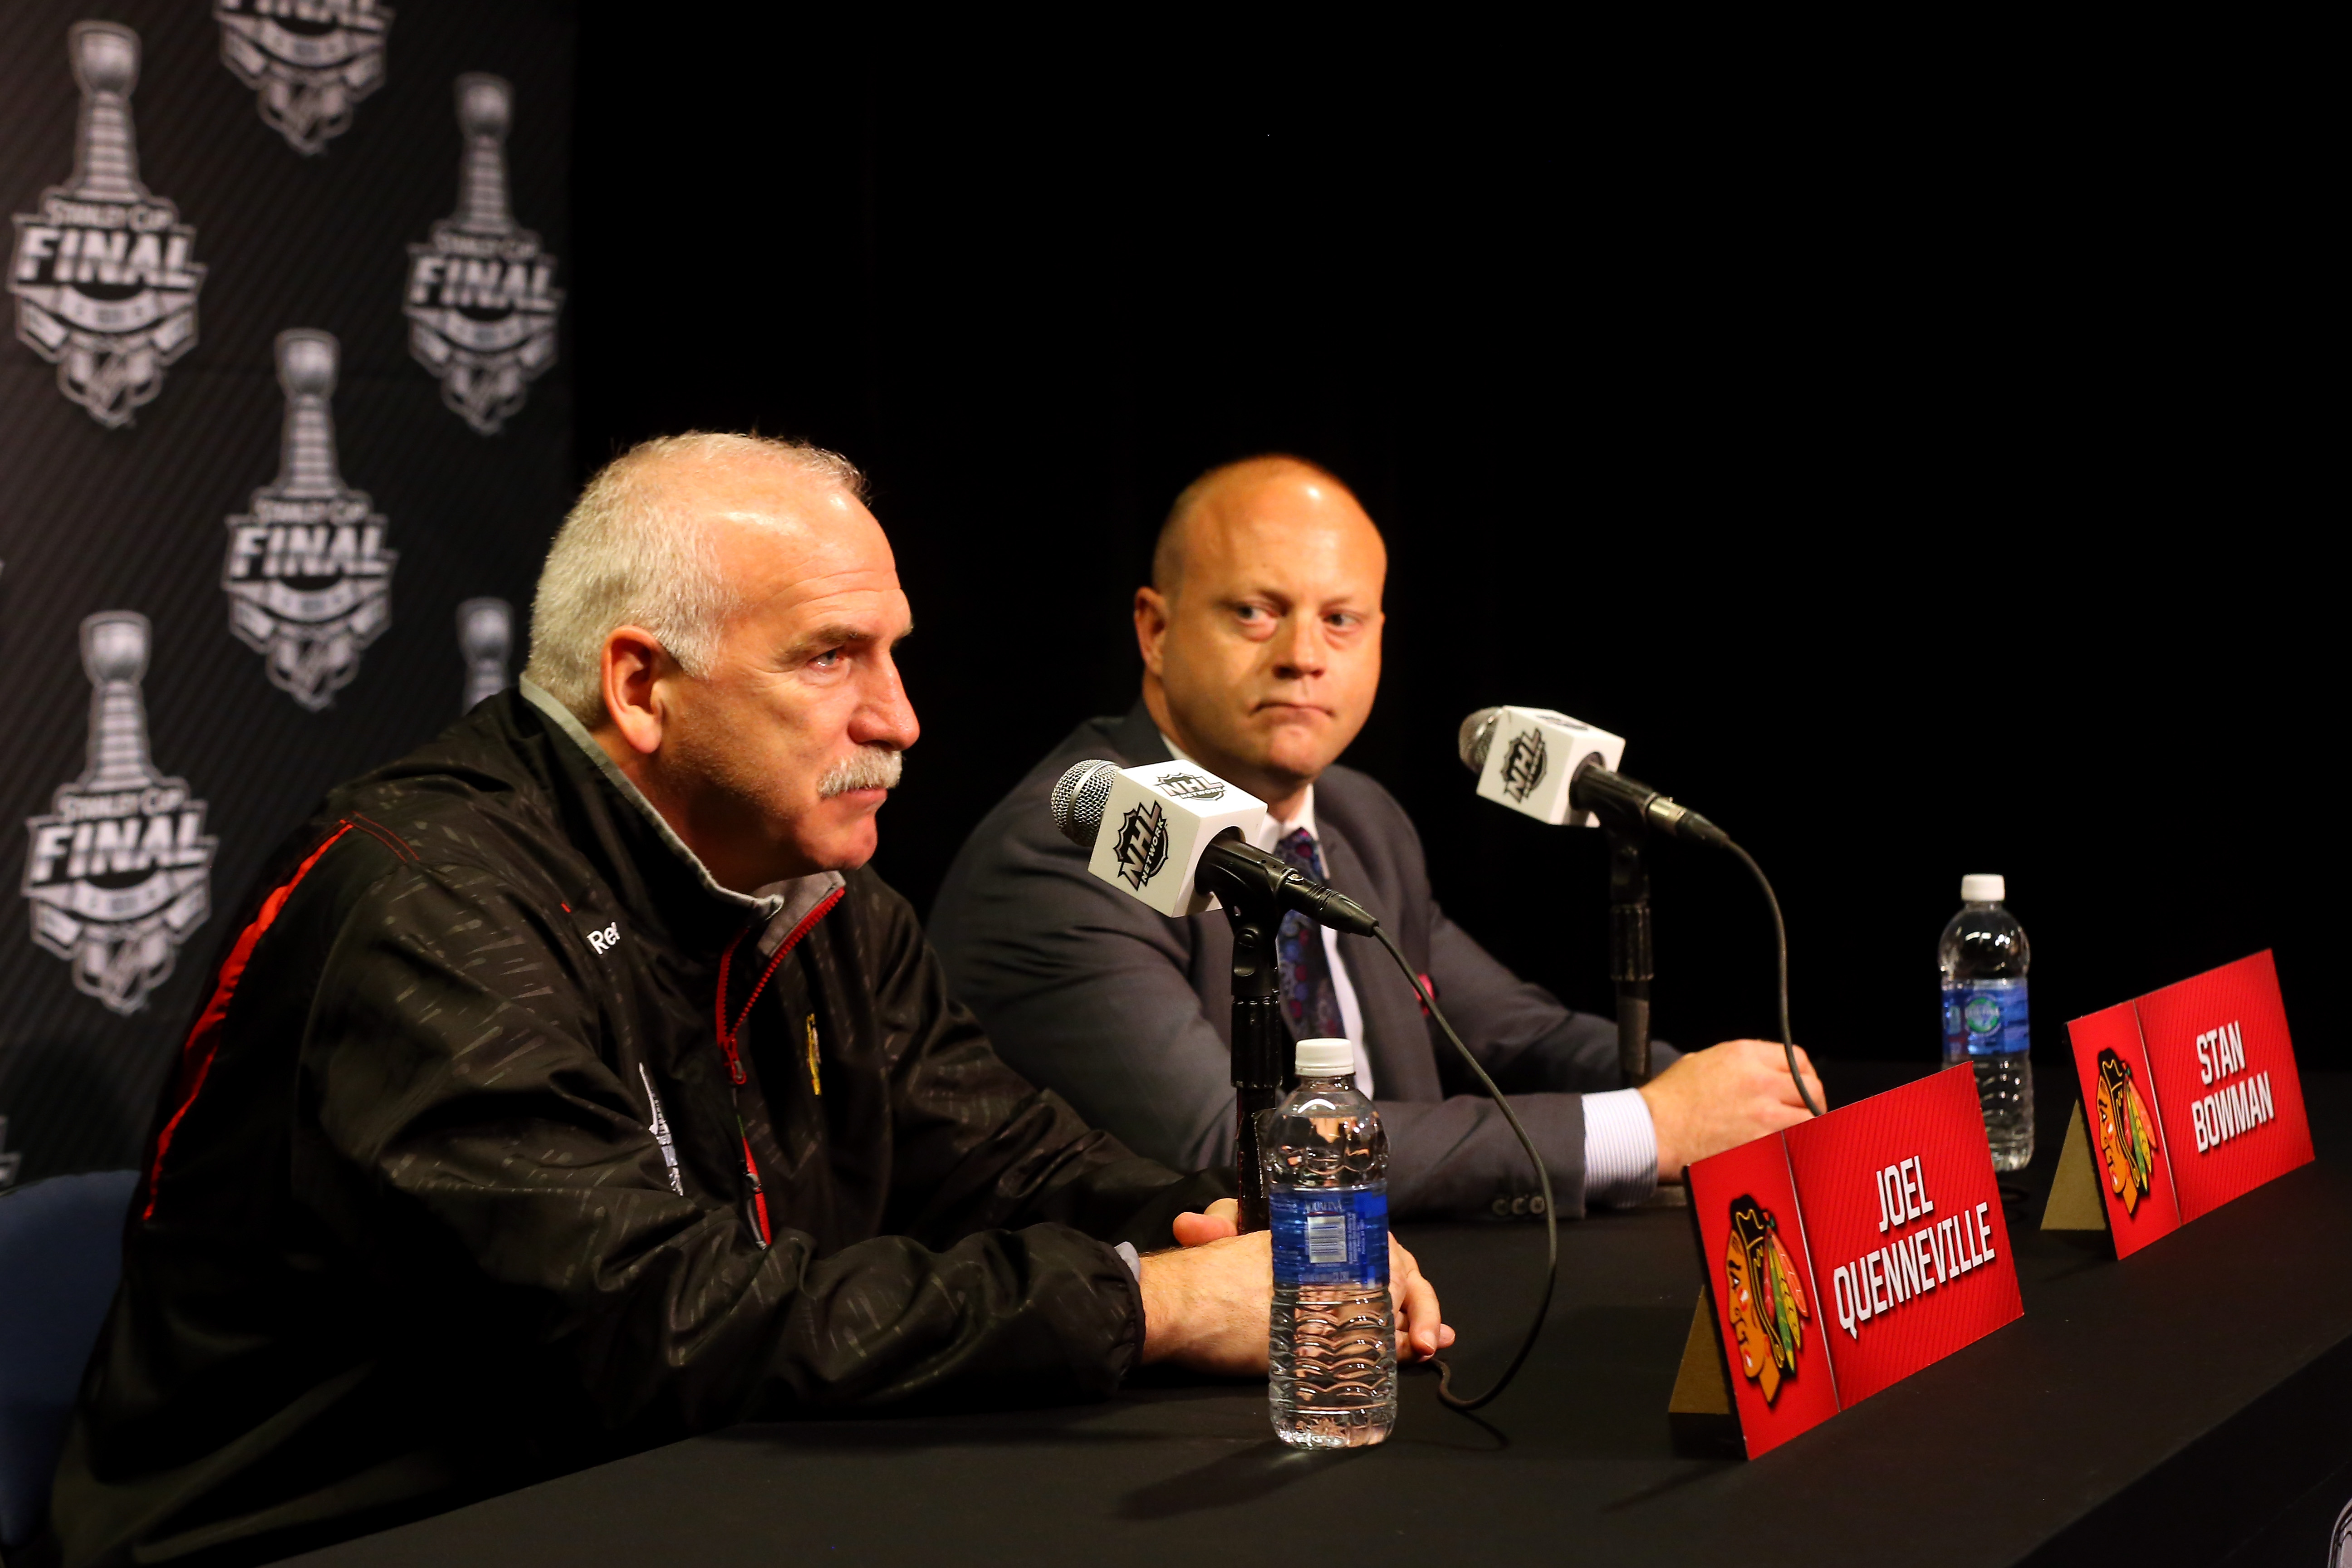 Are Hawks coach Joel Quenneville and GM Stan Bowman hoping to make a play on Jimmy Vesey? (Getty Images).